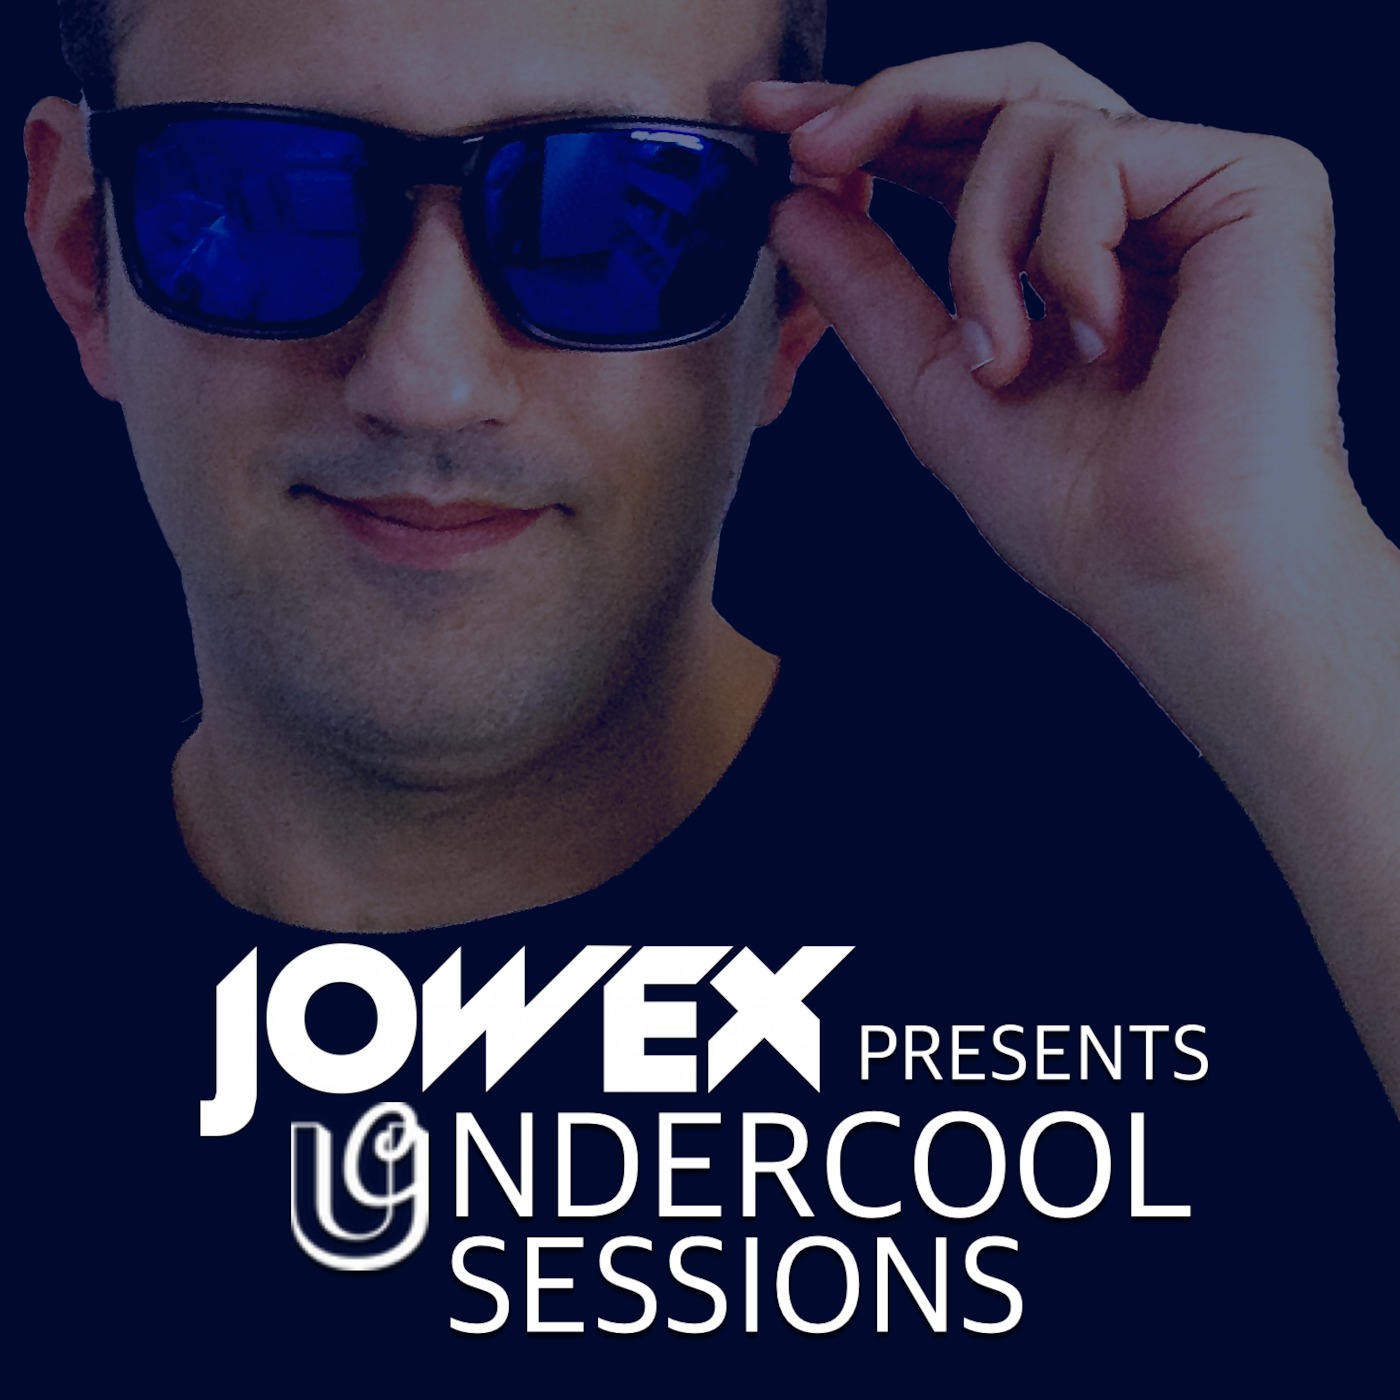 Undercool Sessions